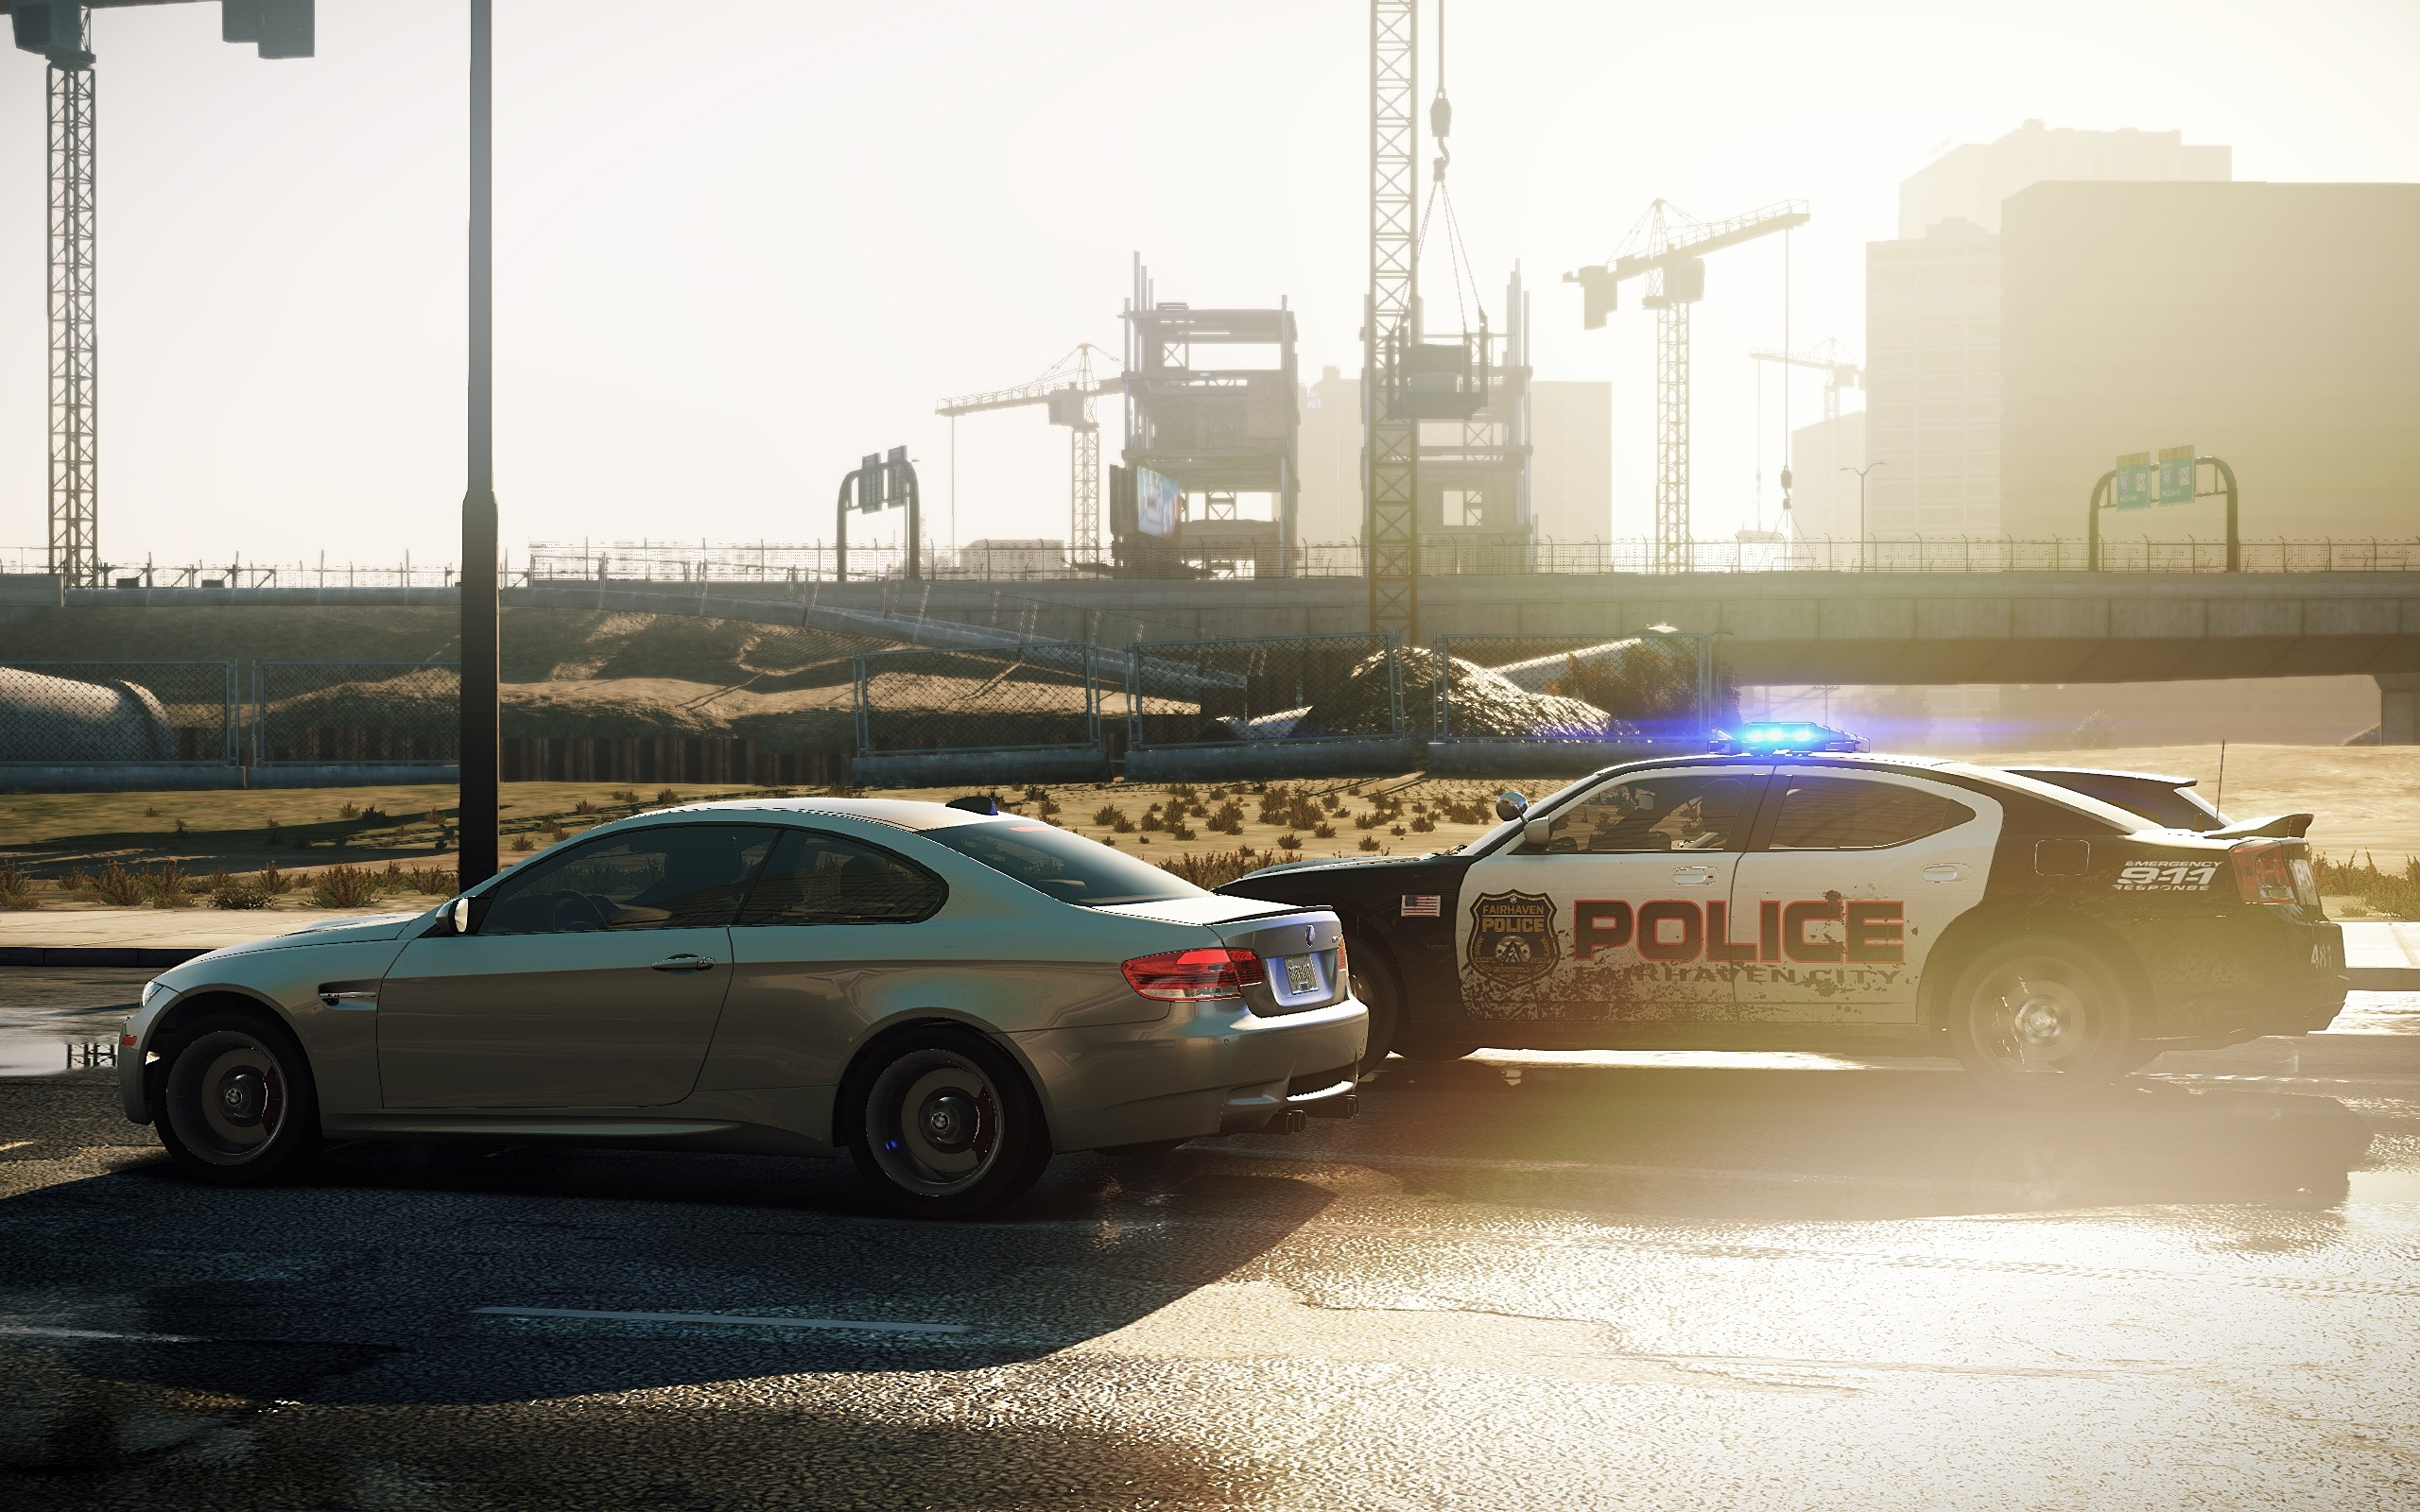 http://mygamecore.com/62-need-for-speed-most-wanted-2-2012-catalyst.html